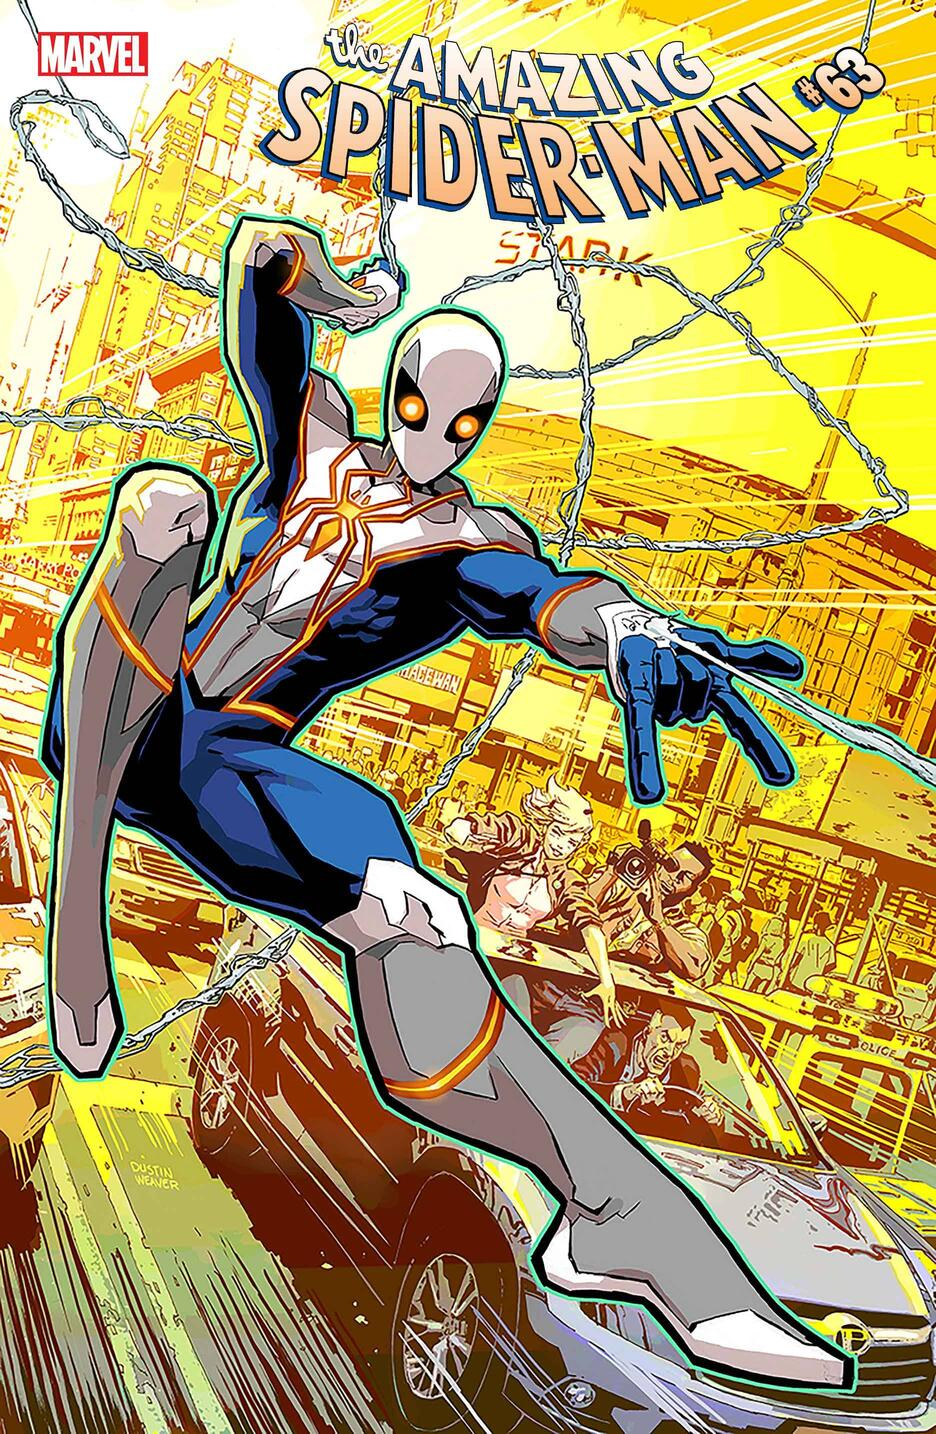 New Spider-Man costume revealed in Amazing Spider-Man #61